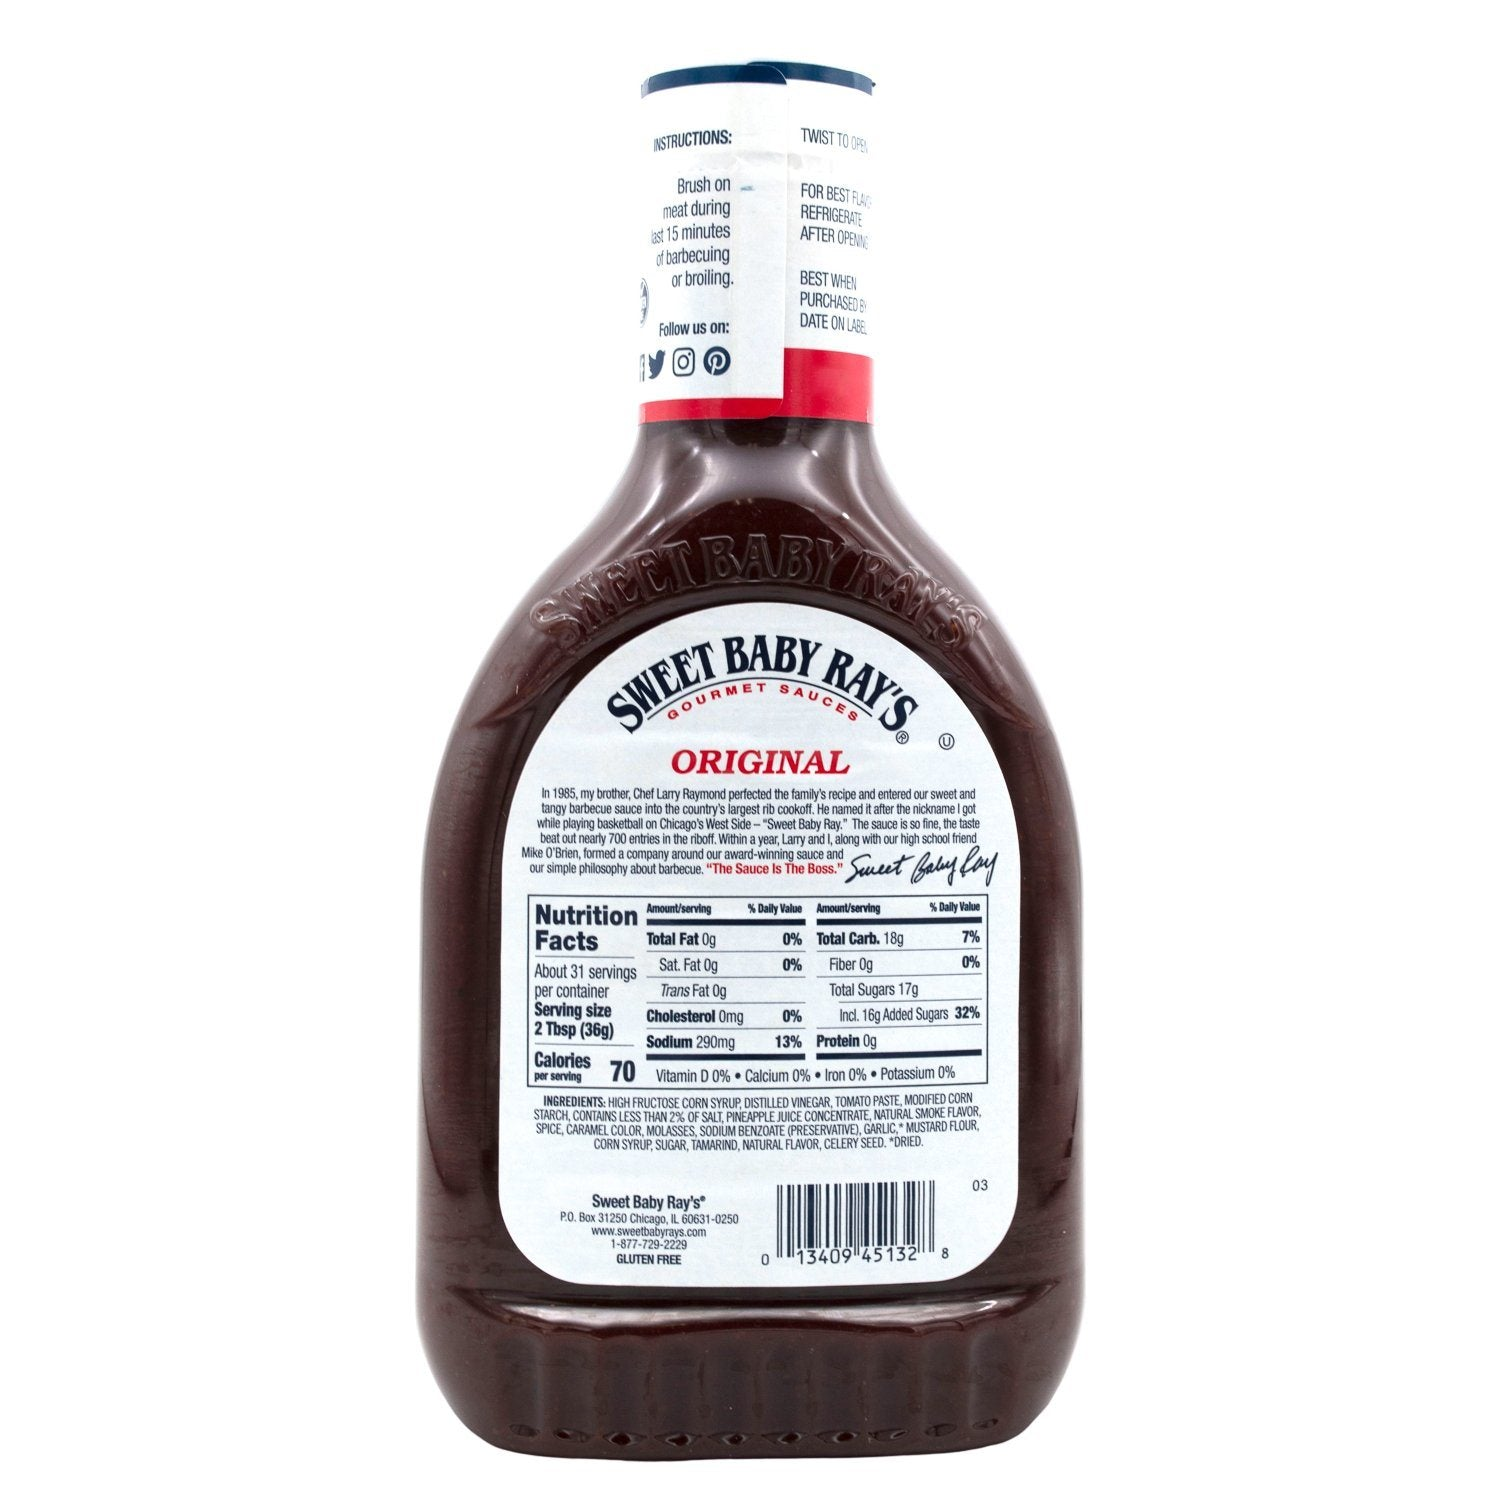 Sweet Baby Ray's Barbecue Sauce Sweet Baby Ray's